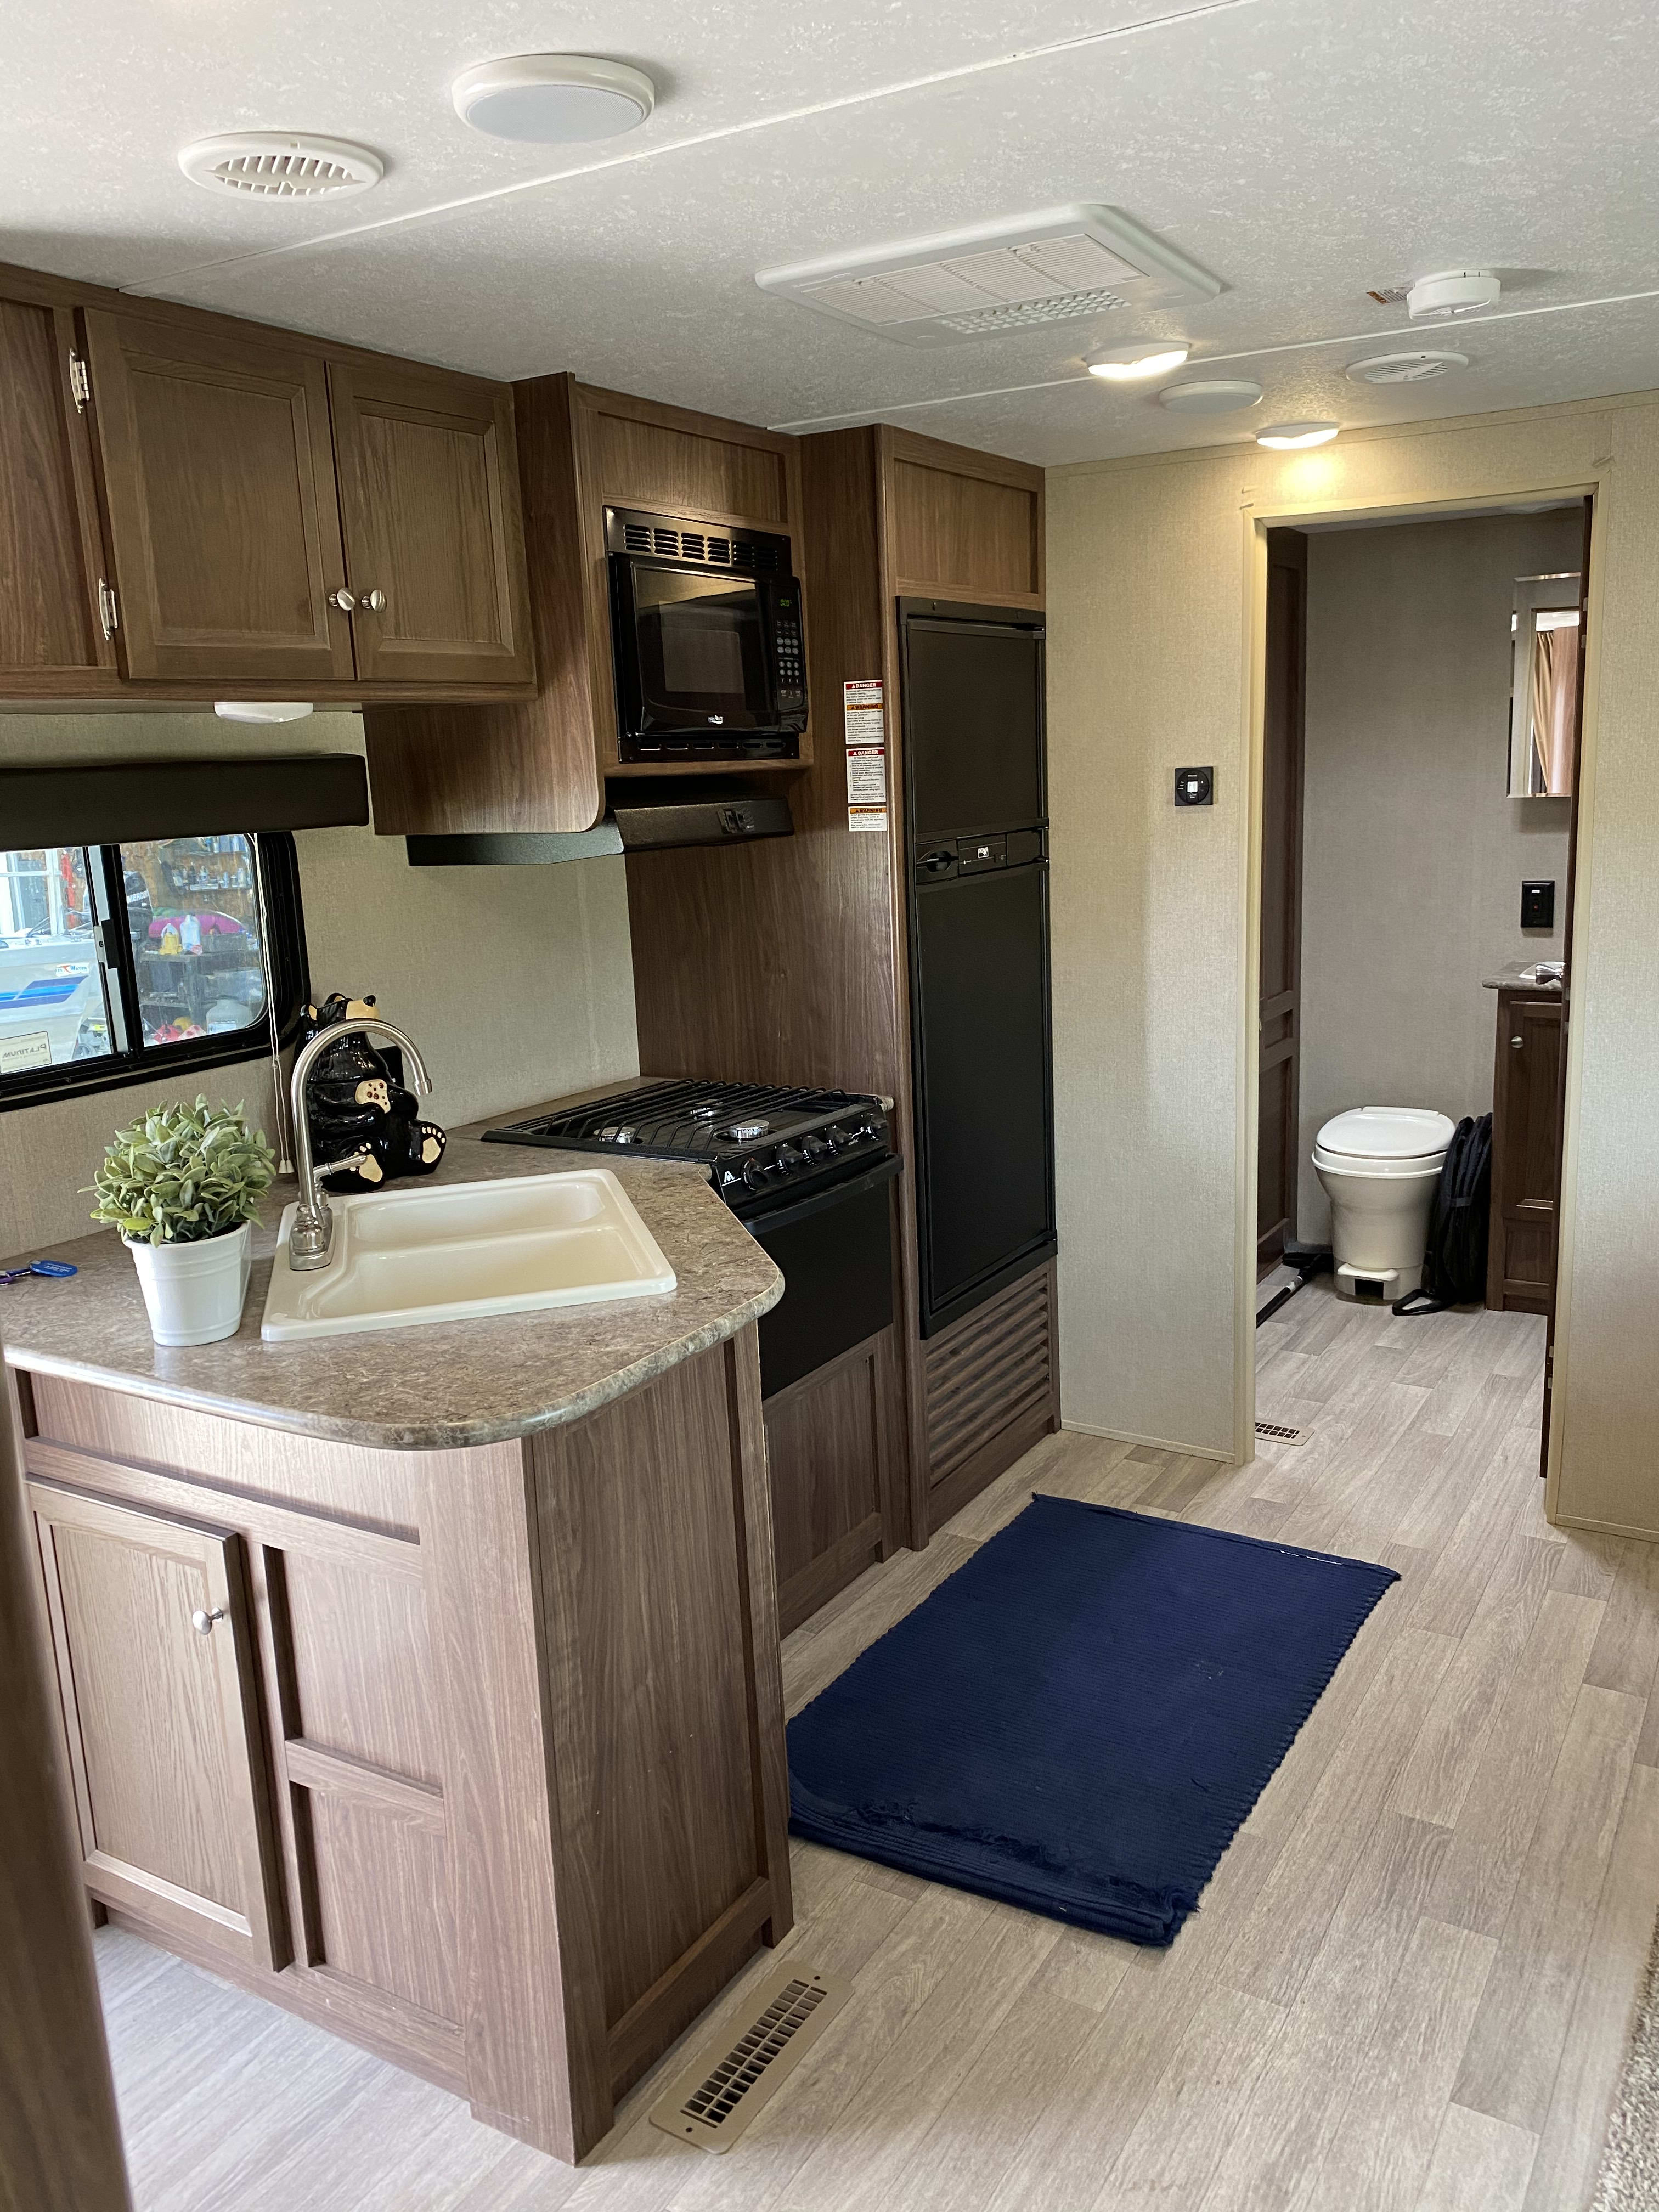 Great kitchen space with large counter area, double sided sink, 3 burner stove, microwave and fridge/freezer. Dutchmen Coleman 2017